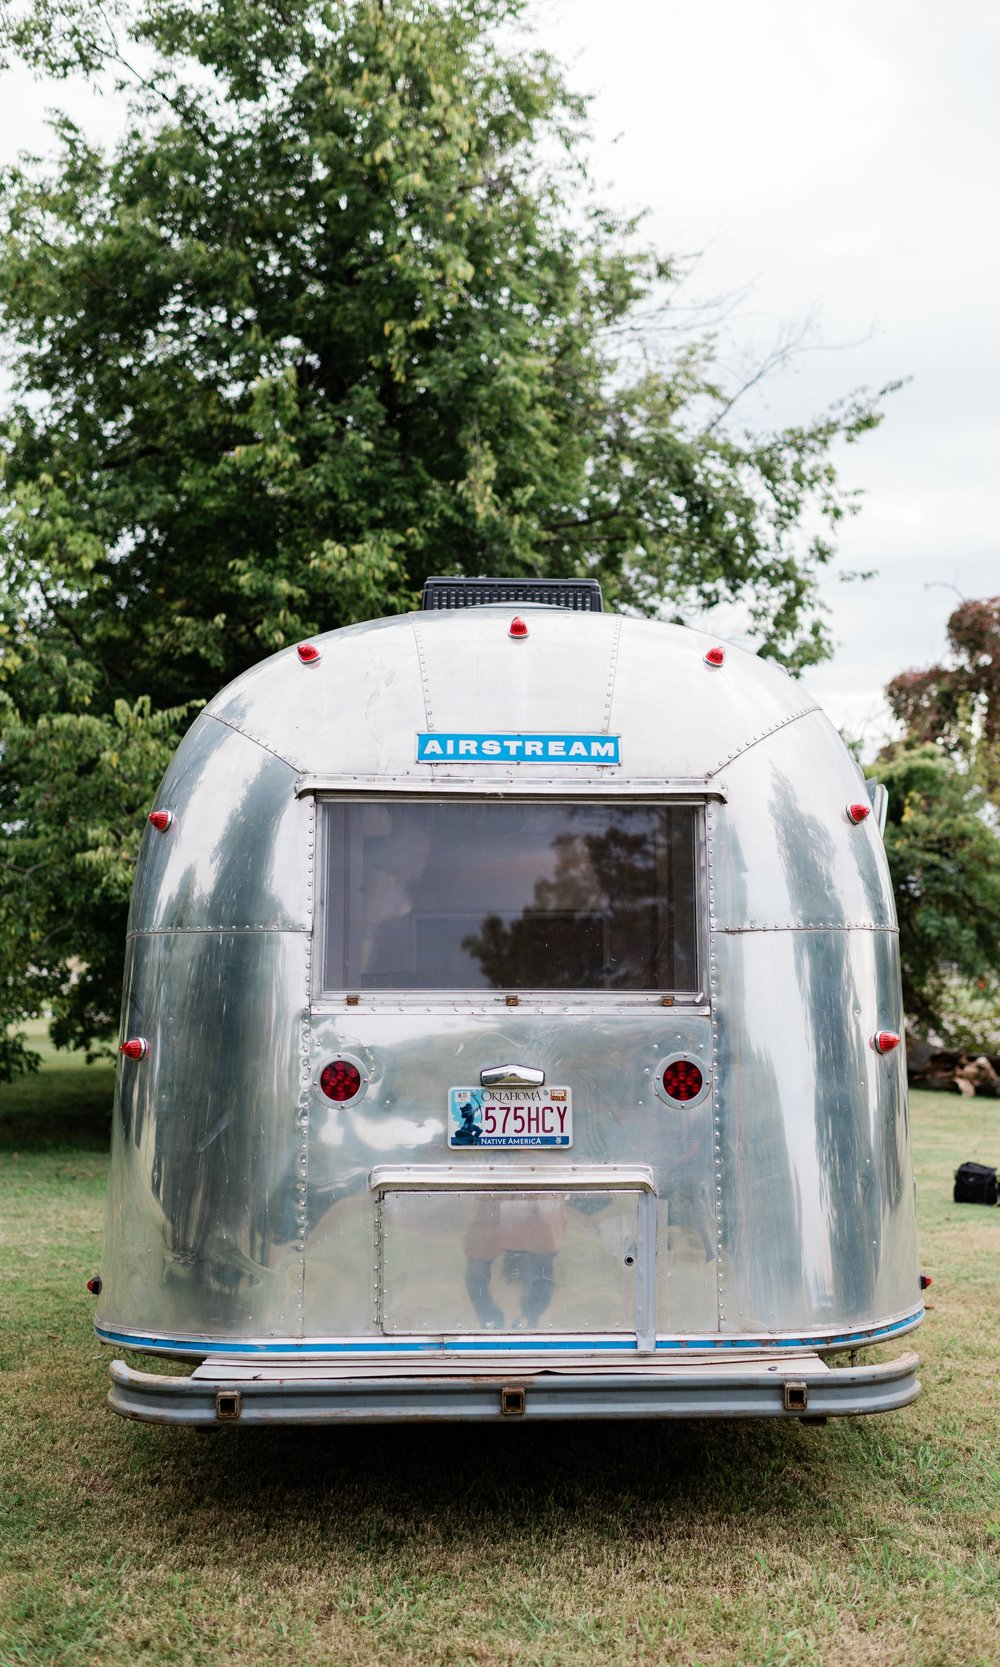 Homma Camp Co - Airstream Shoot - 018.jpg